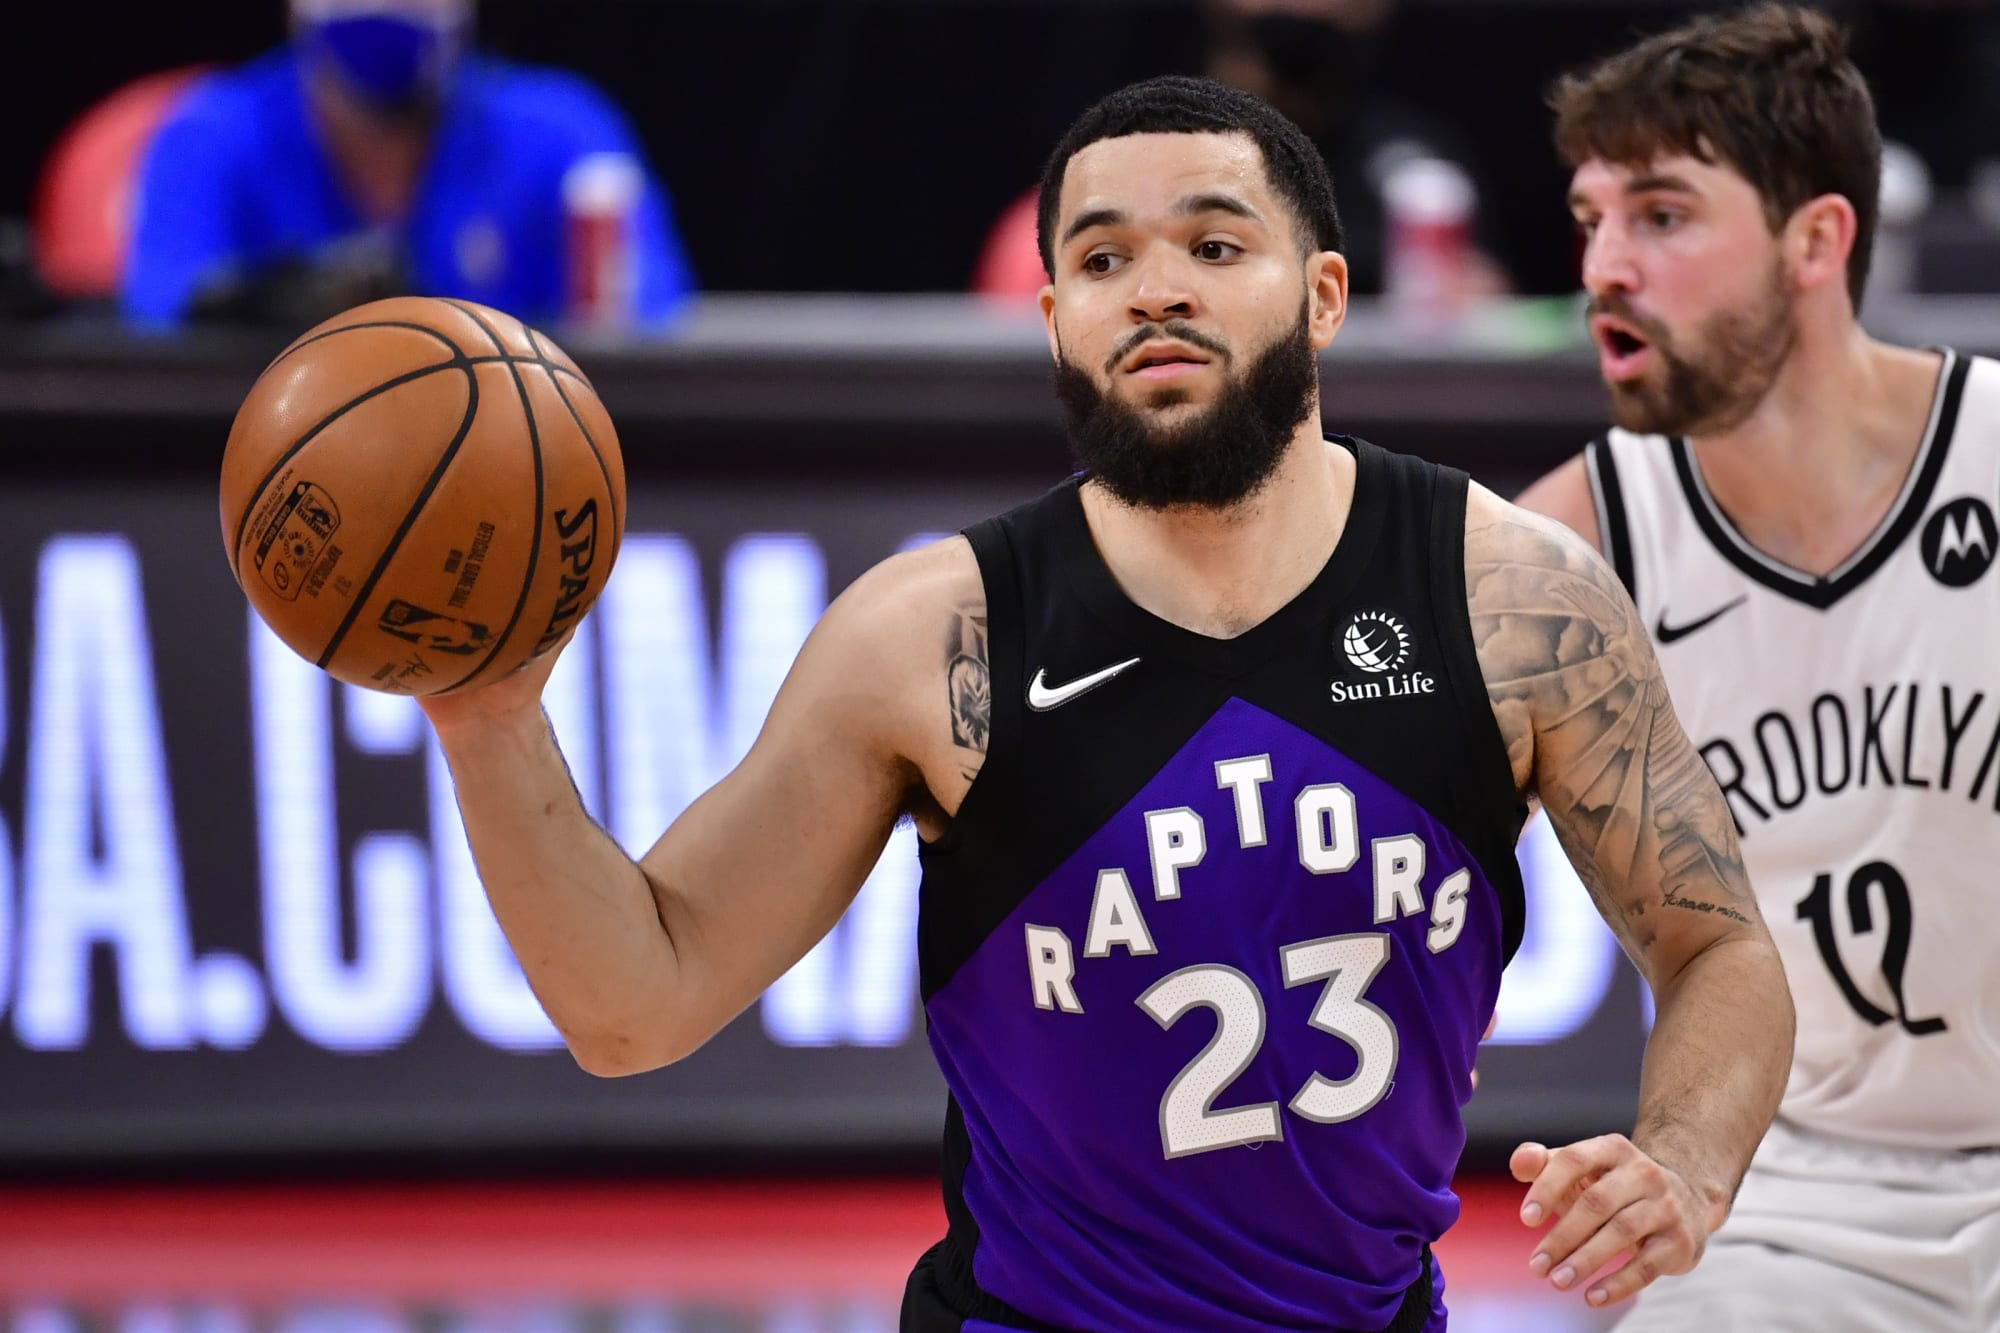 Toronto Raptors: Fred VanVleet has hilarious quote about unlucky 2020